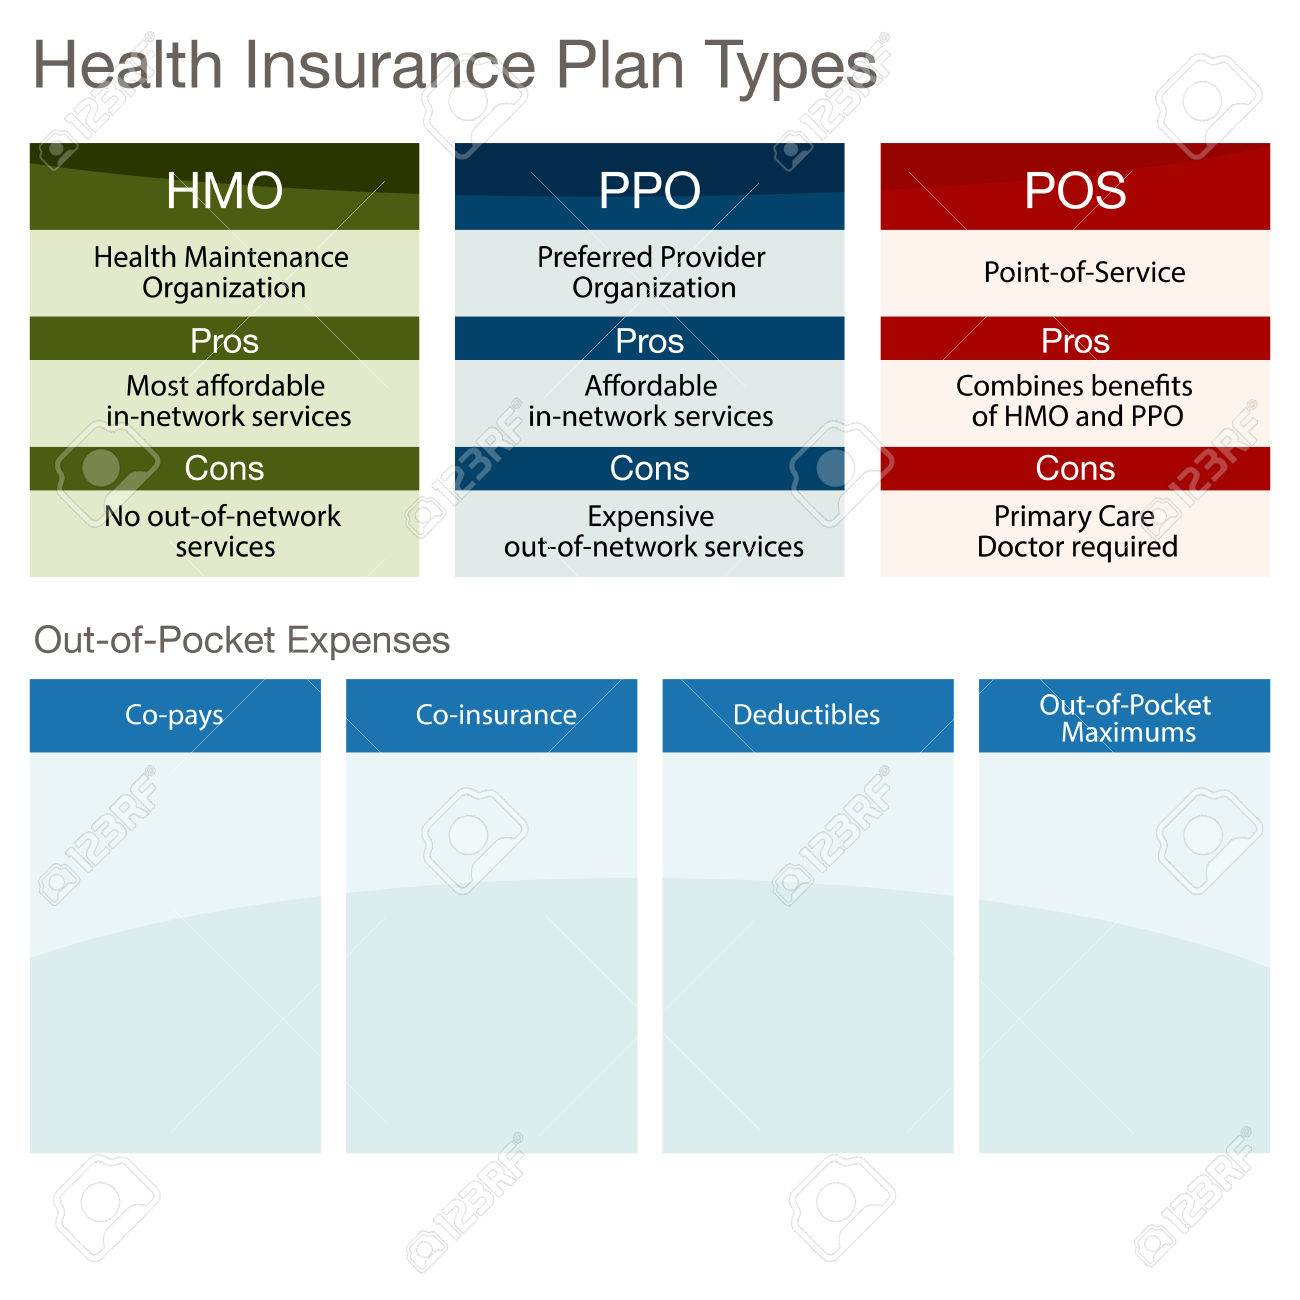 Health Insurance Plans >> An Image Of A Health Insurance Plan Type Chart Royalty Free